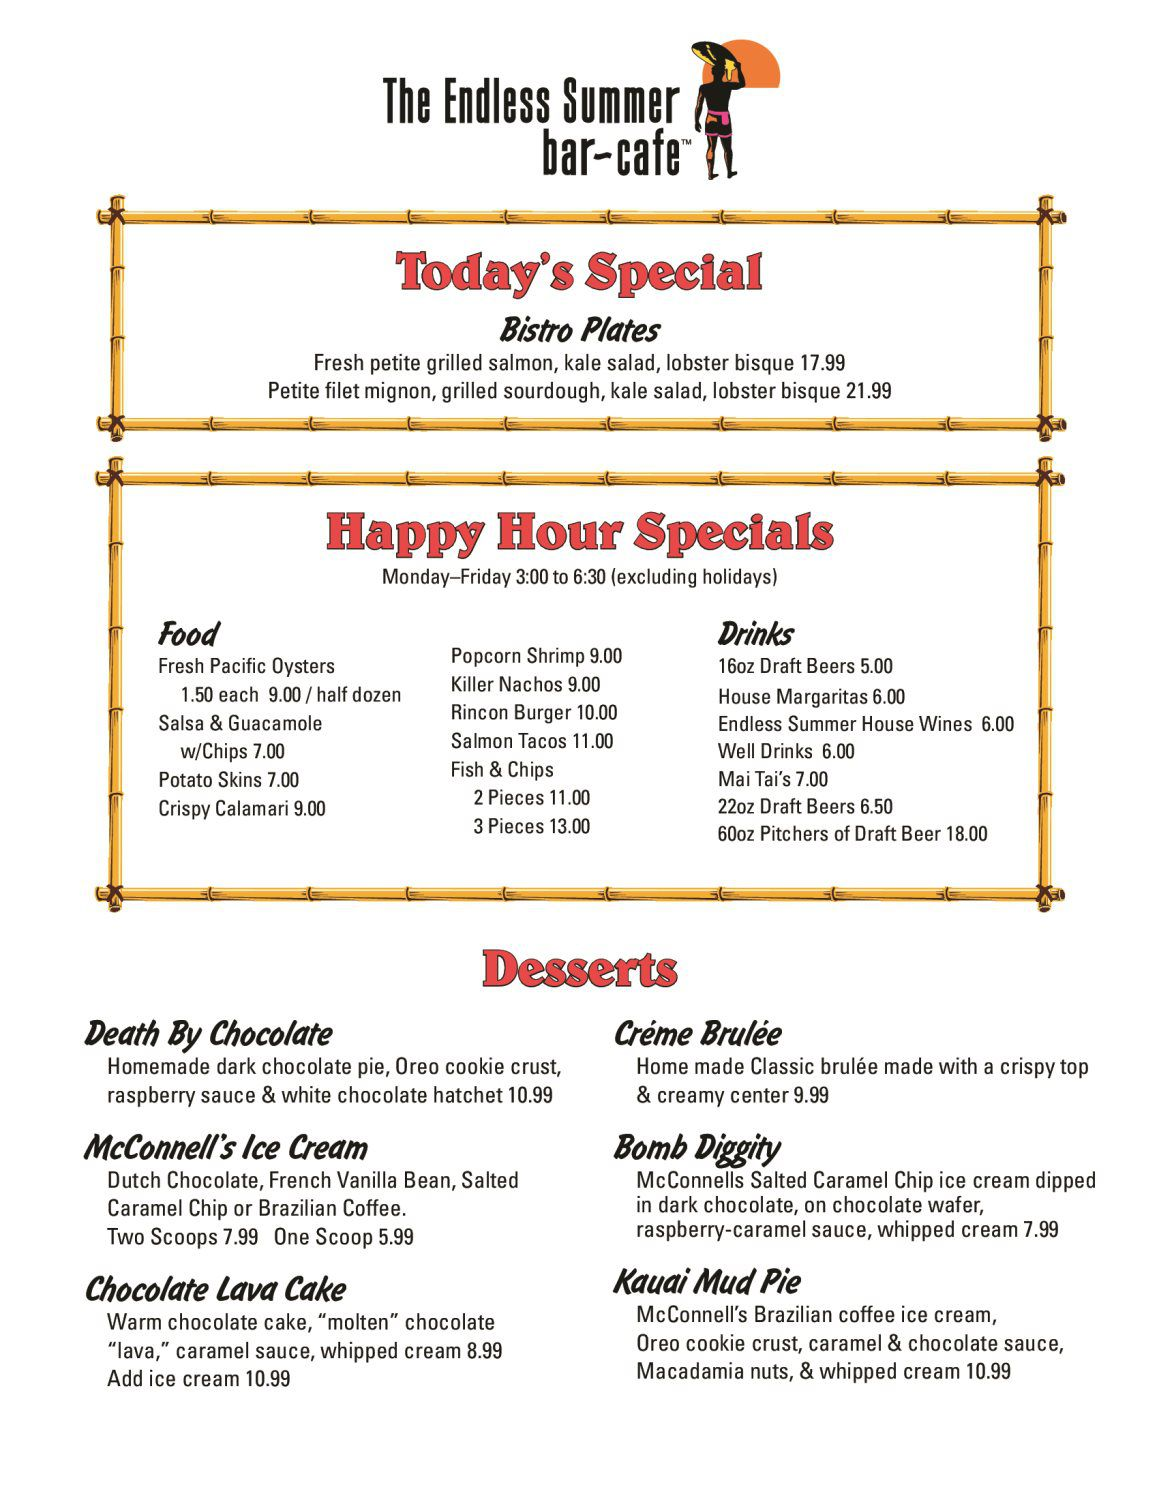 The Endless Summer Bar Cafe Menu - Chuck's Waterfront Grill